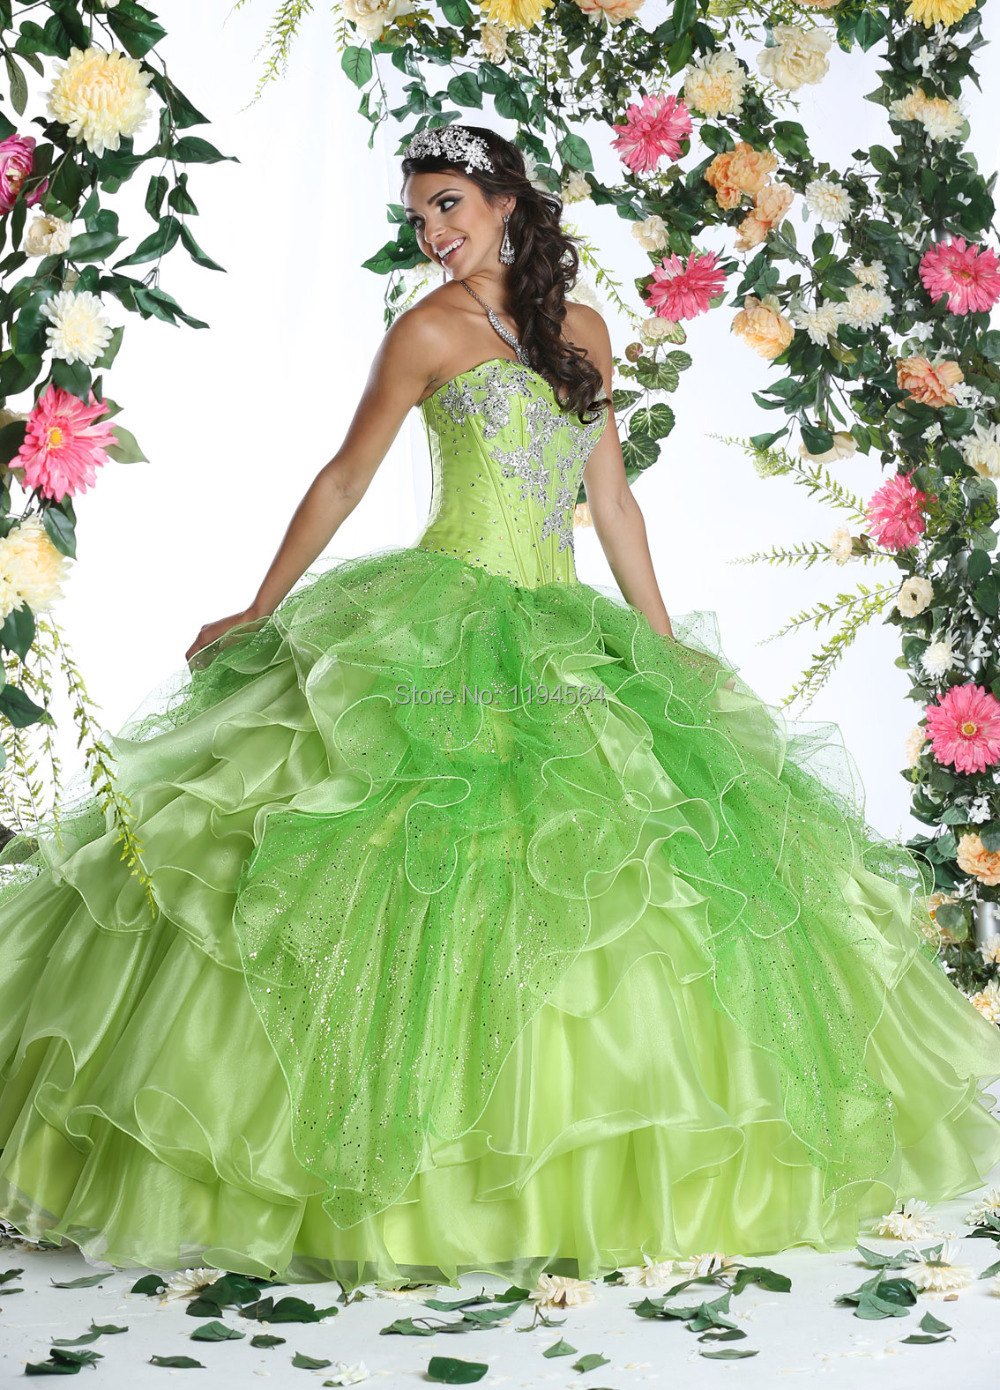 Online Get Cheap Lime Green Ball Gown -Aliexpress.com | Alibaba Group